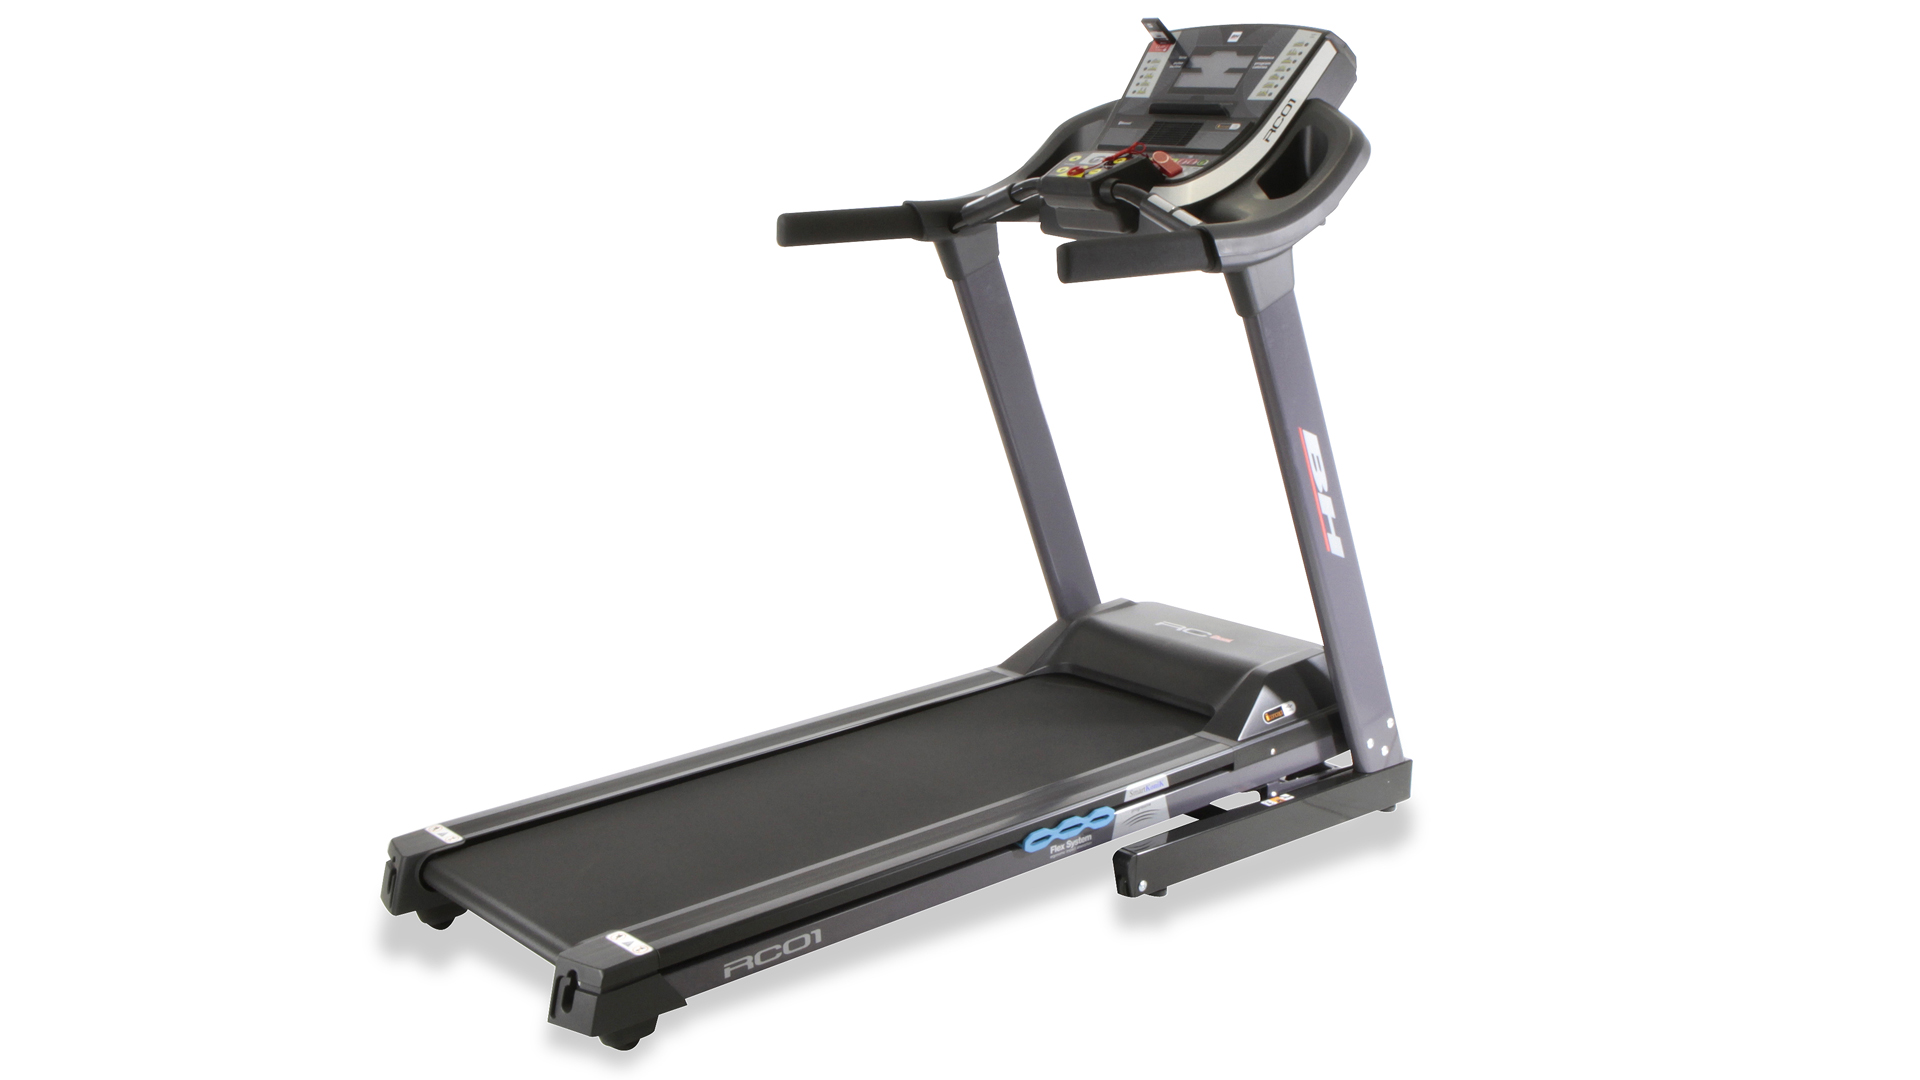 treadmill i rc01 dual i regular use bh fitness at homewhat is your goal?